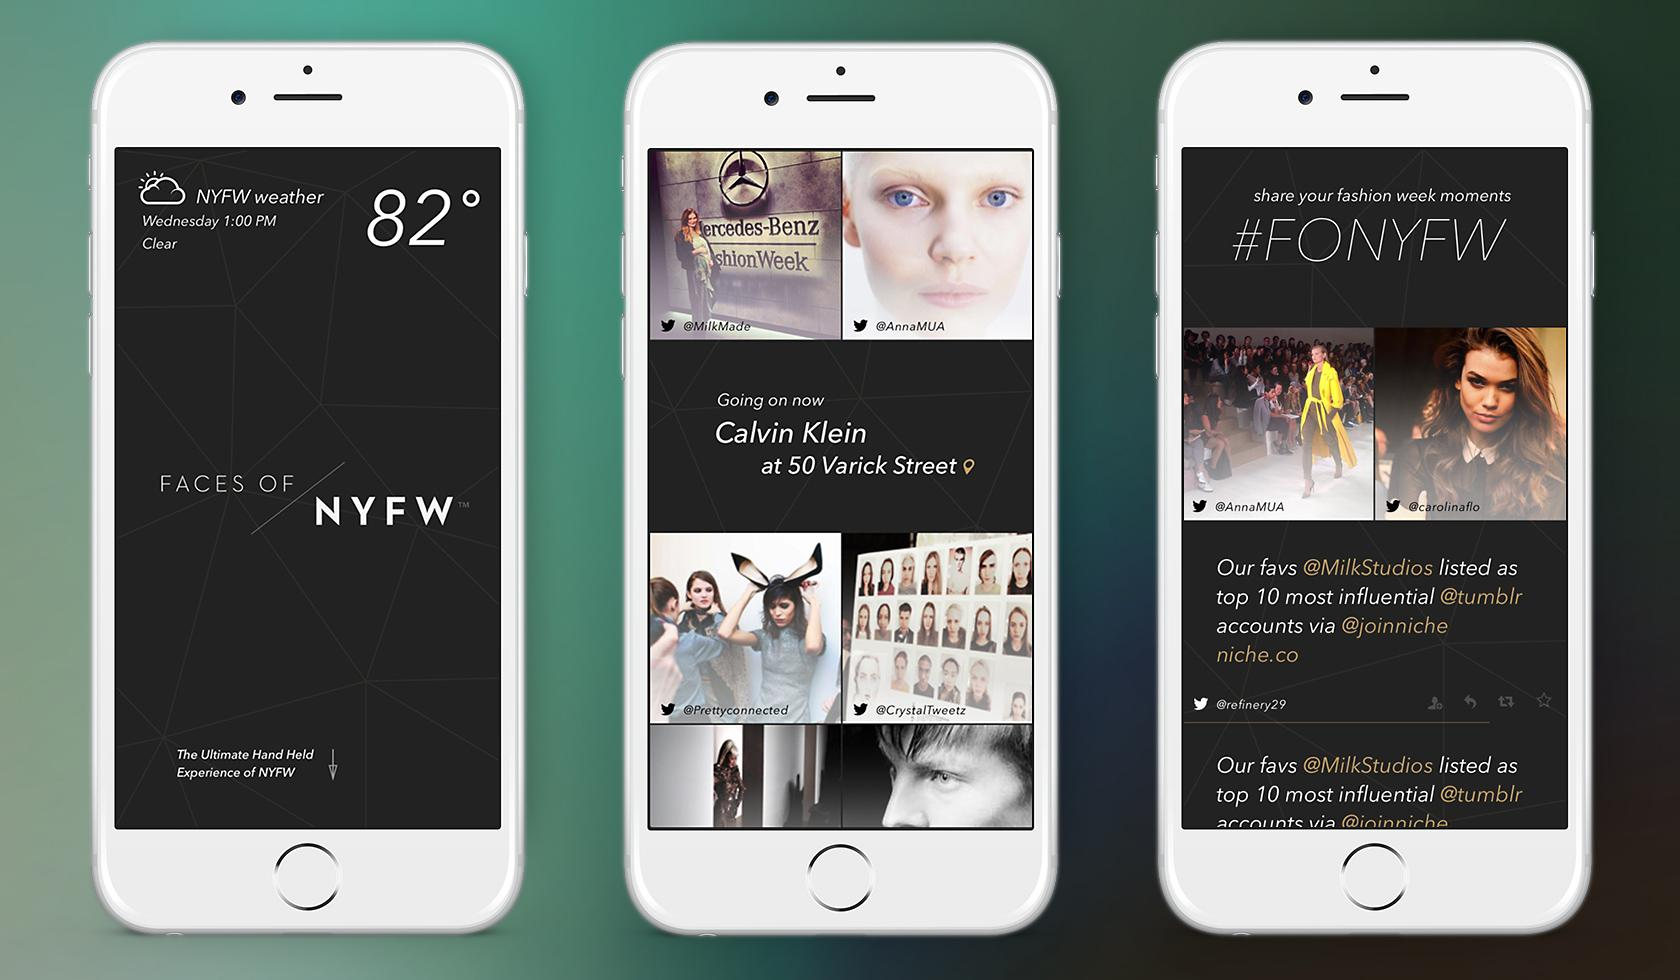 Faces of NYFW New York Fashion Week app design marrying design and technology